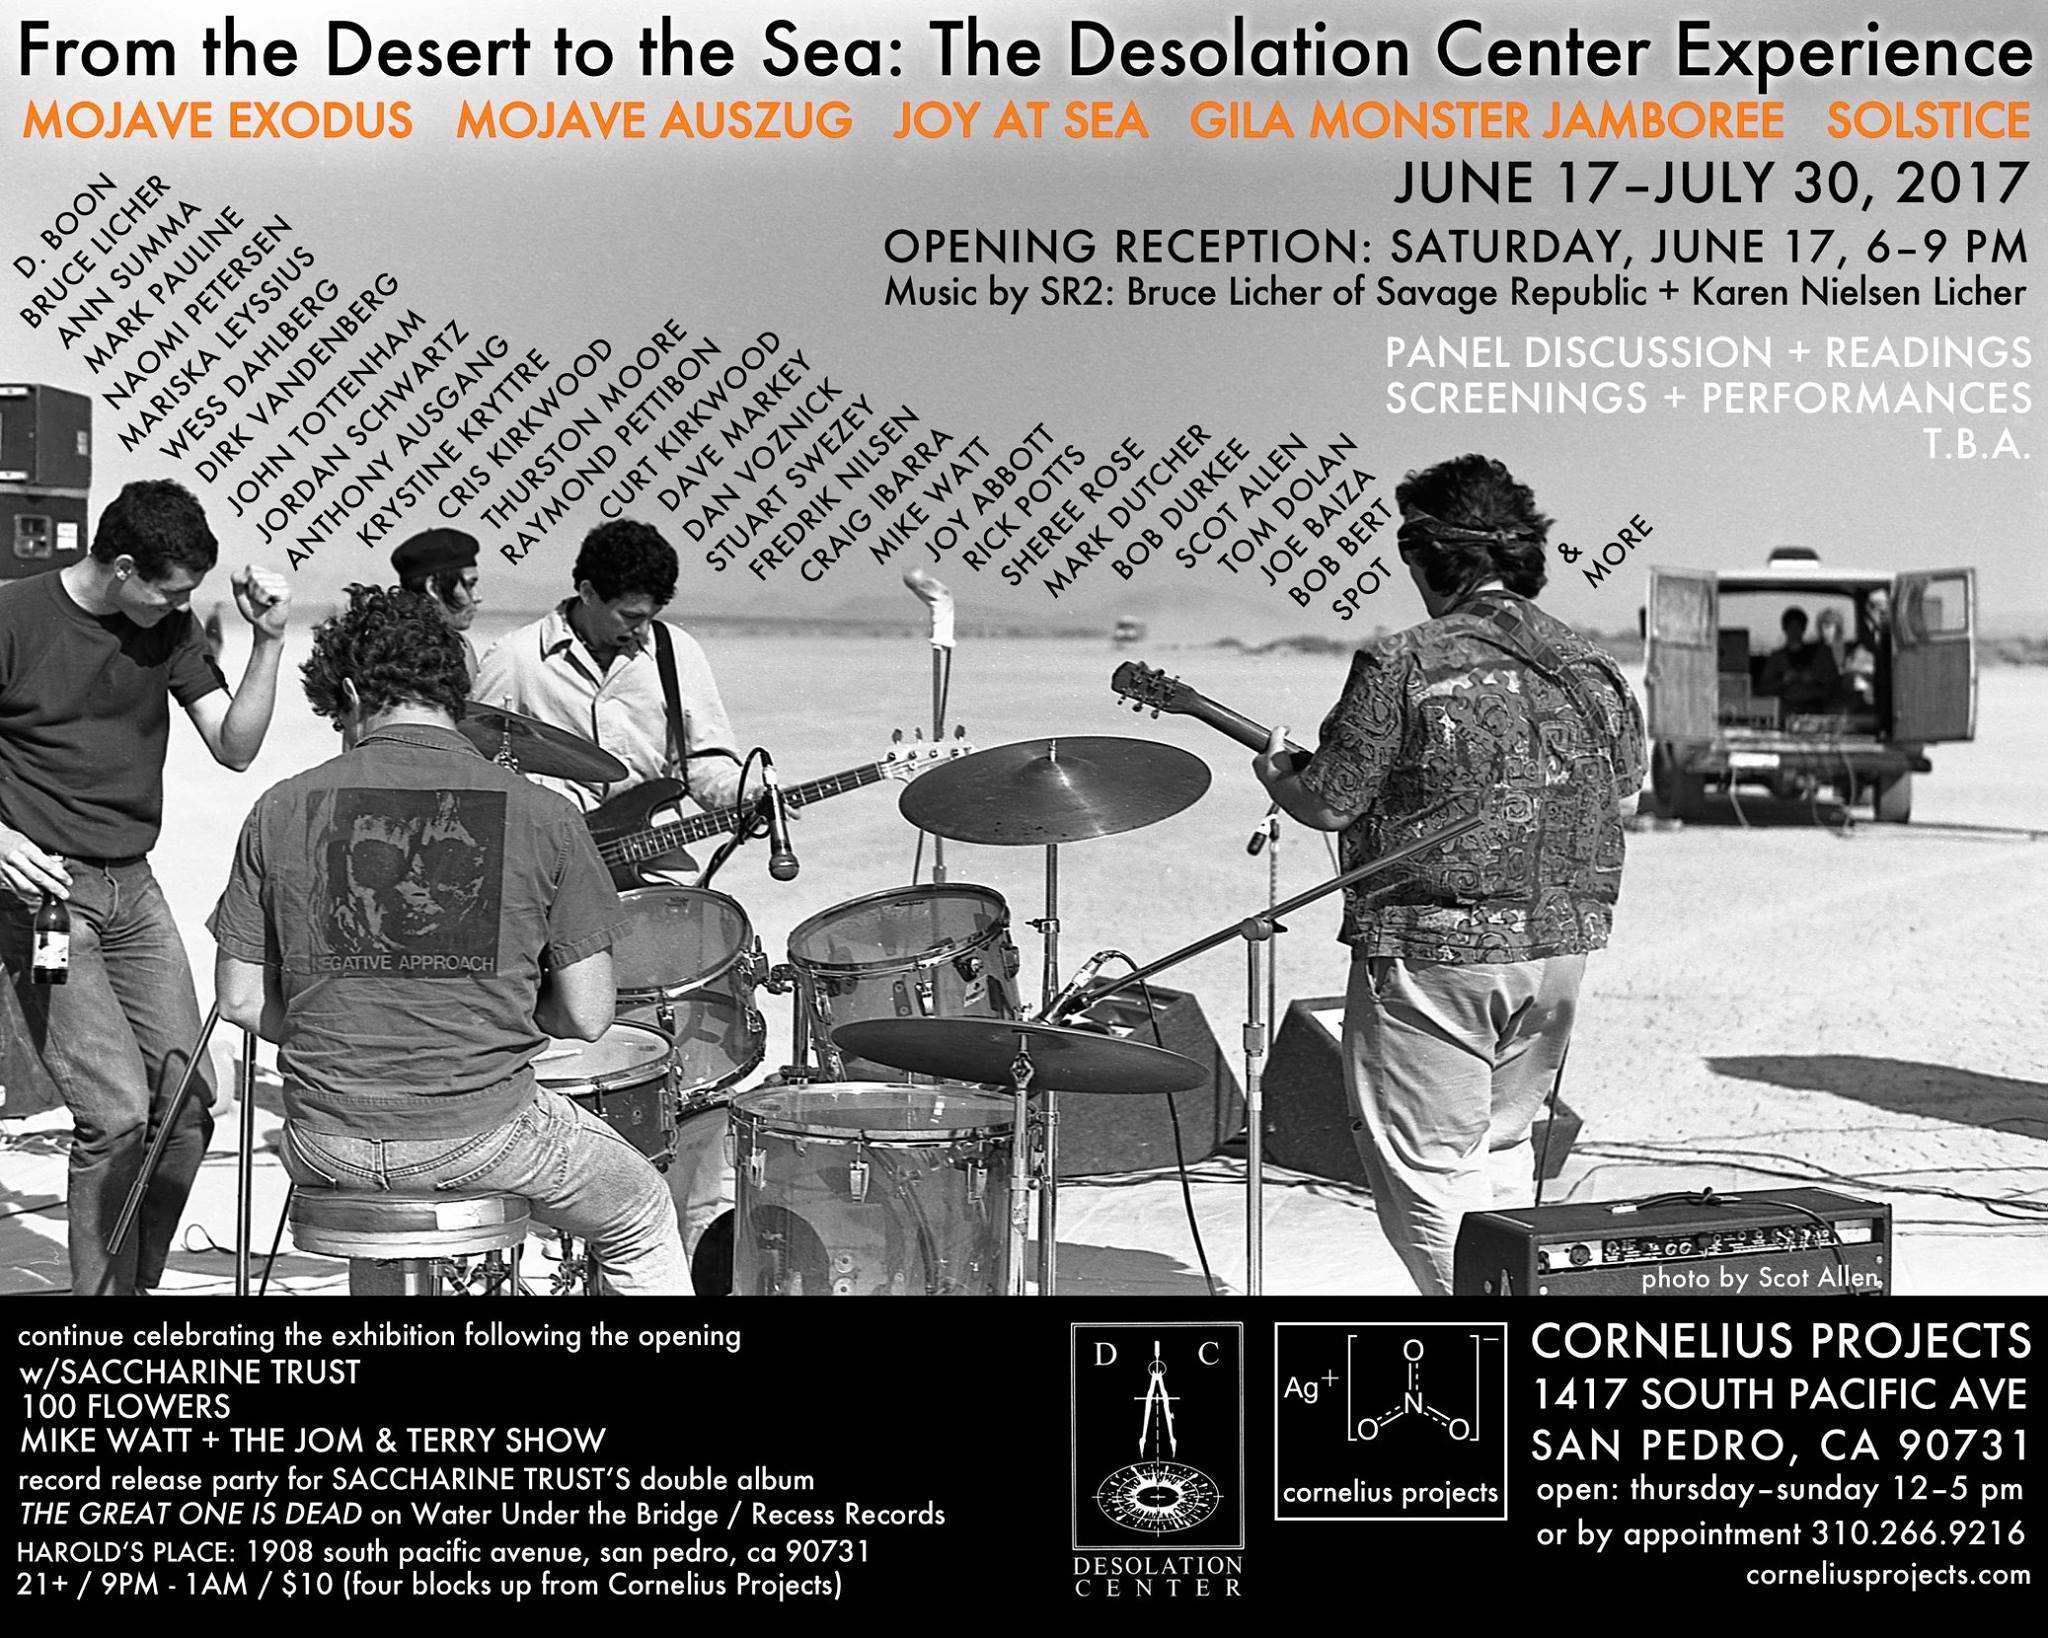 Cornelius Projects Celebrates The Desolation Center Events of the 80s with Screenings, Readings and Live Performances